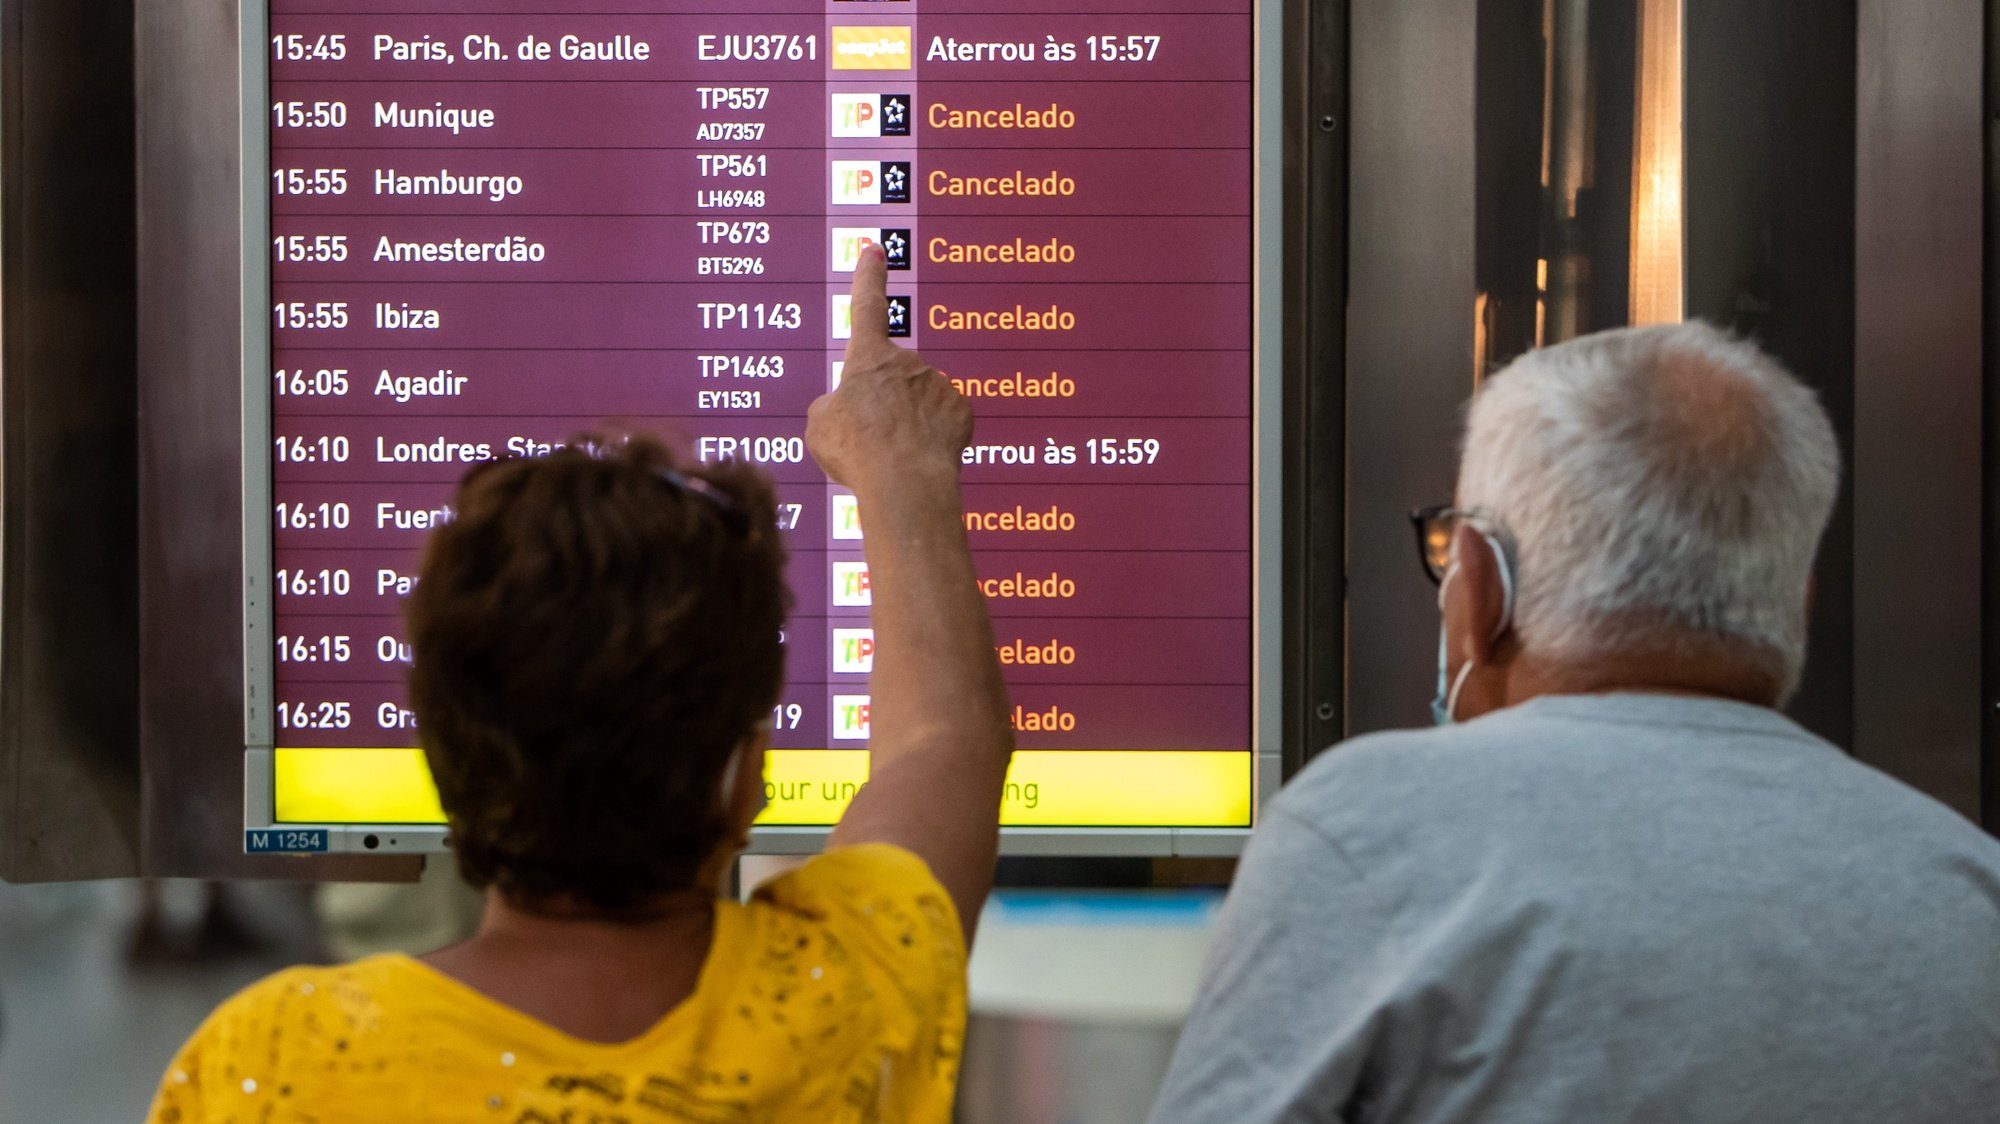 A woman points to a monitor with incoming flights to Lisbon, many of them canceled due to a strike of the handling company, Groundforce, which is causing major disruption in the Lisbon Airport, causing the cancelation of dozens of flights, in Lisbon, Portugal, 17 July 2021. Groundforce workers are protesting against colective dismissal of workers and low salaries. JOSE SENA GOULAO/LUSA